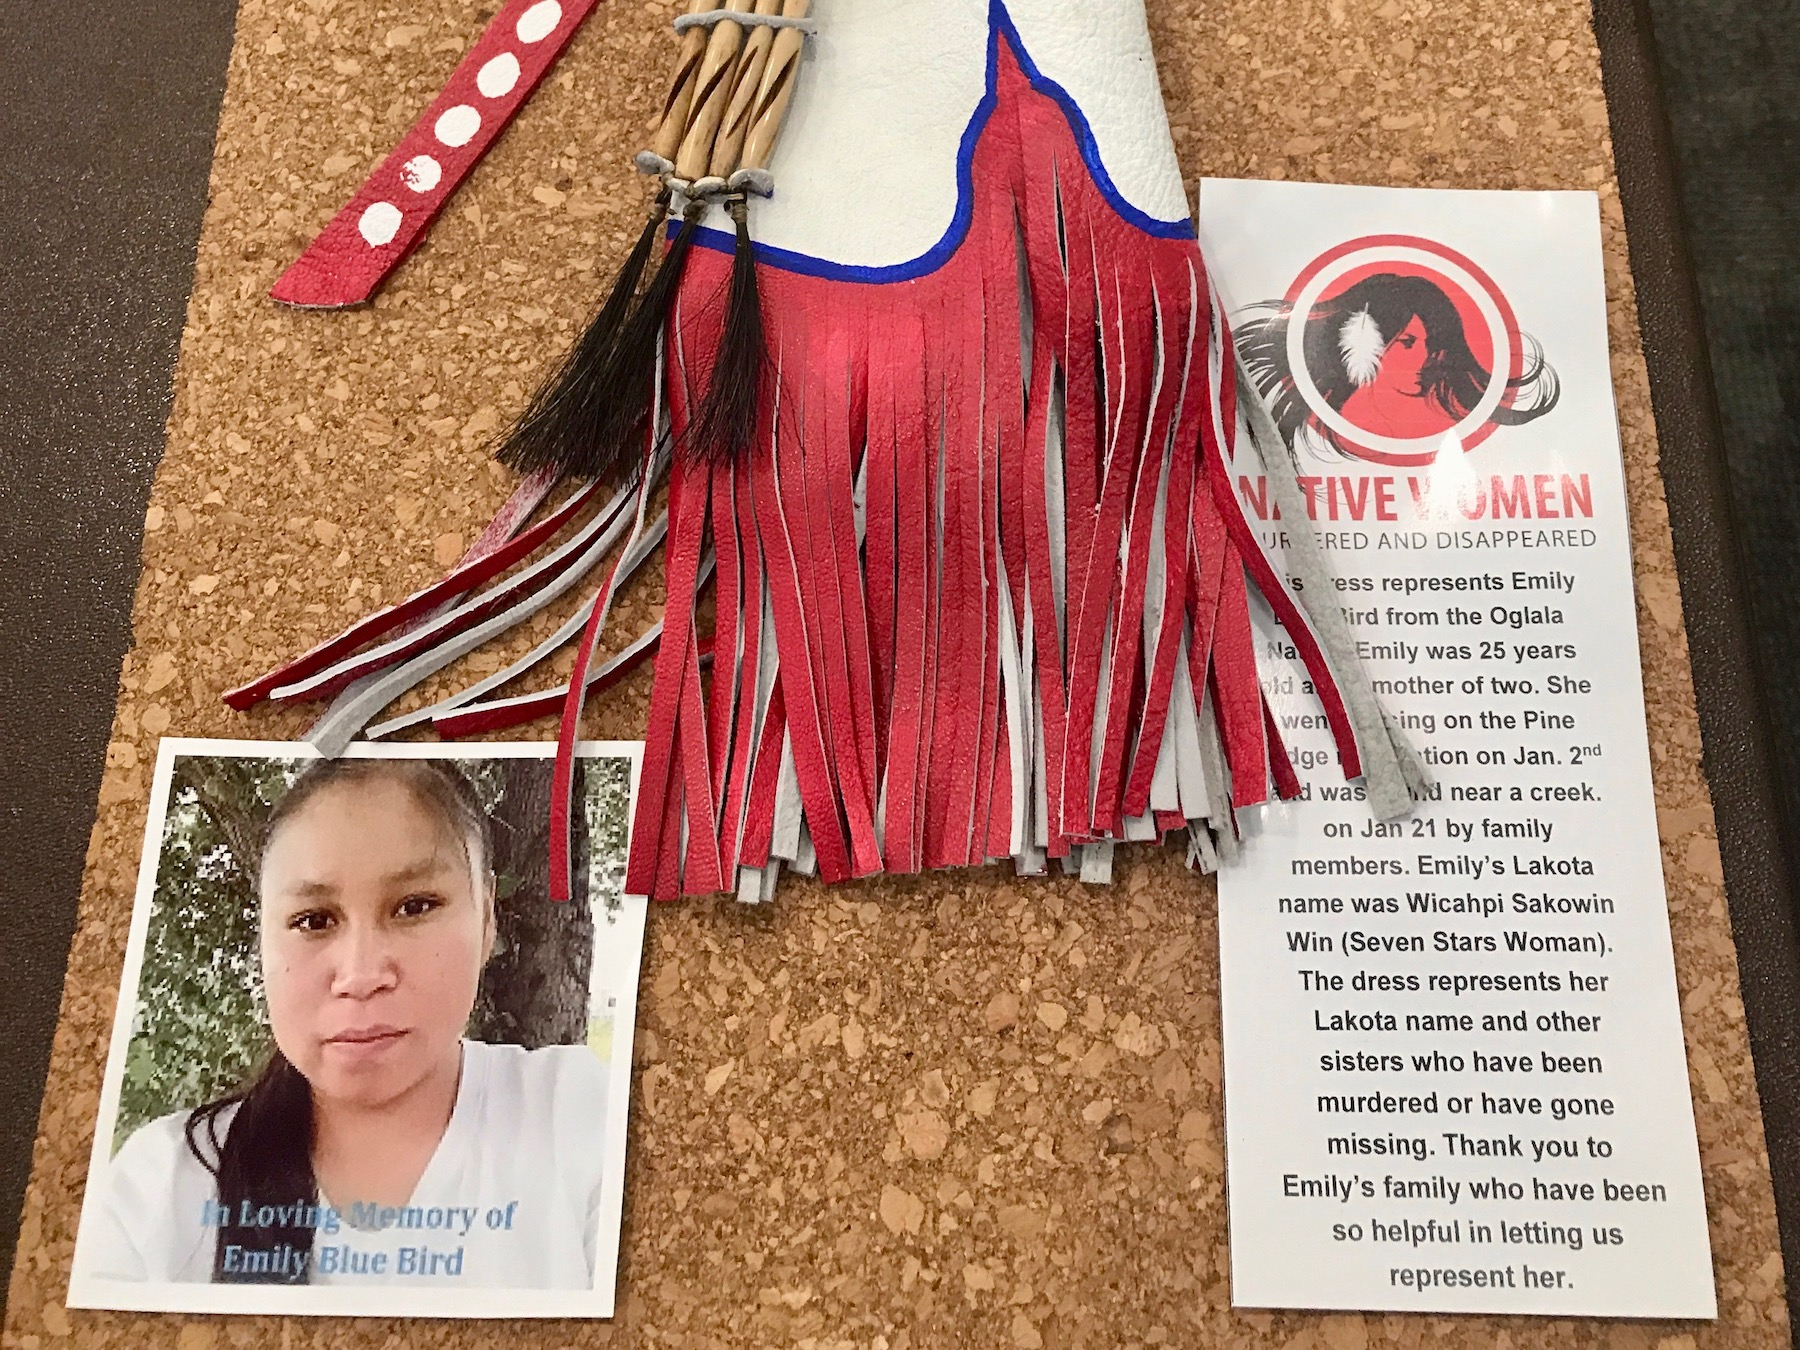 Mary Annette Pember: Awareness for missing and murdered sisters